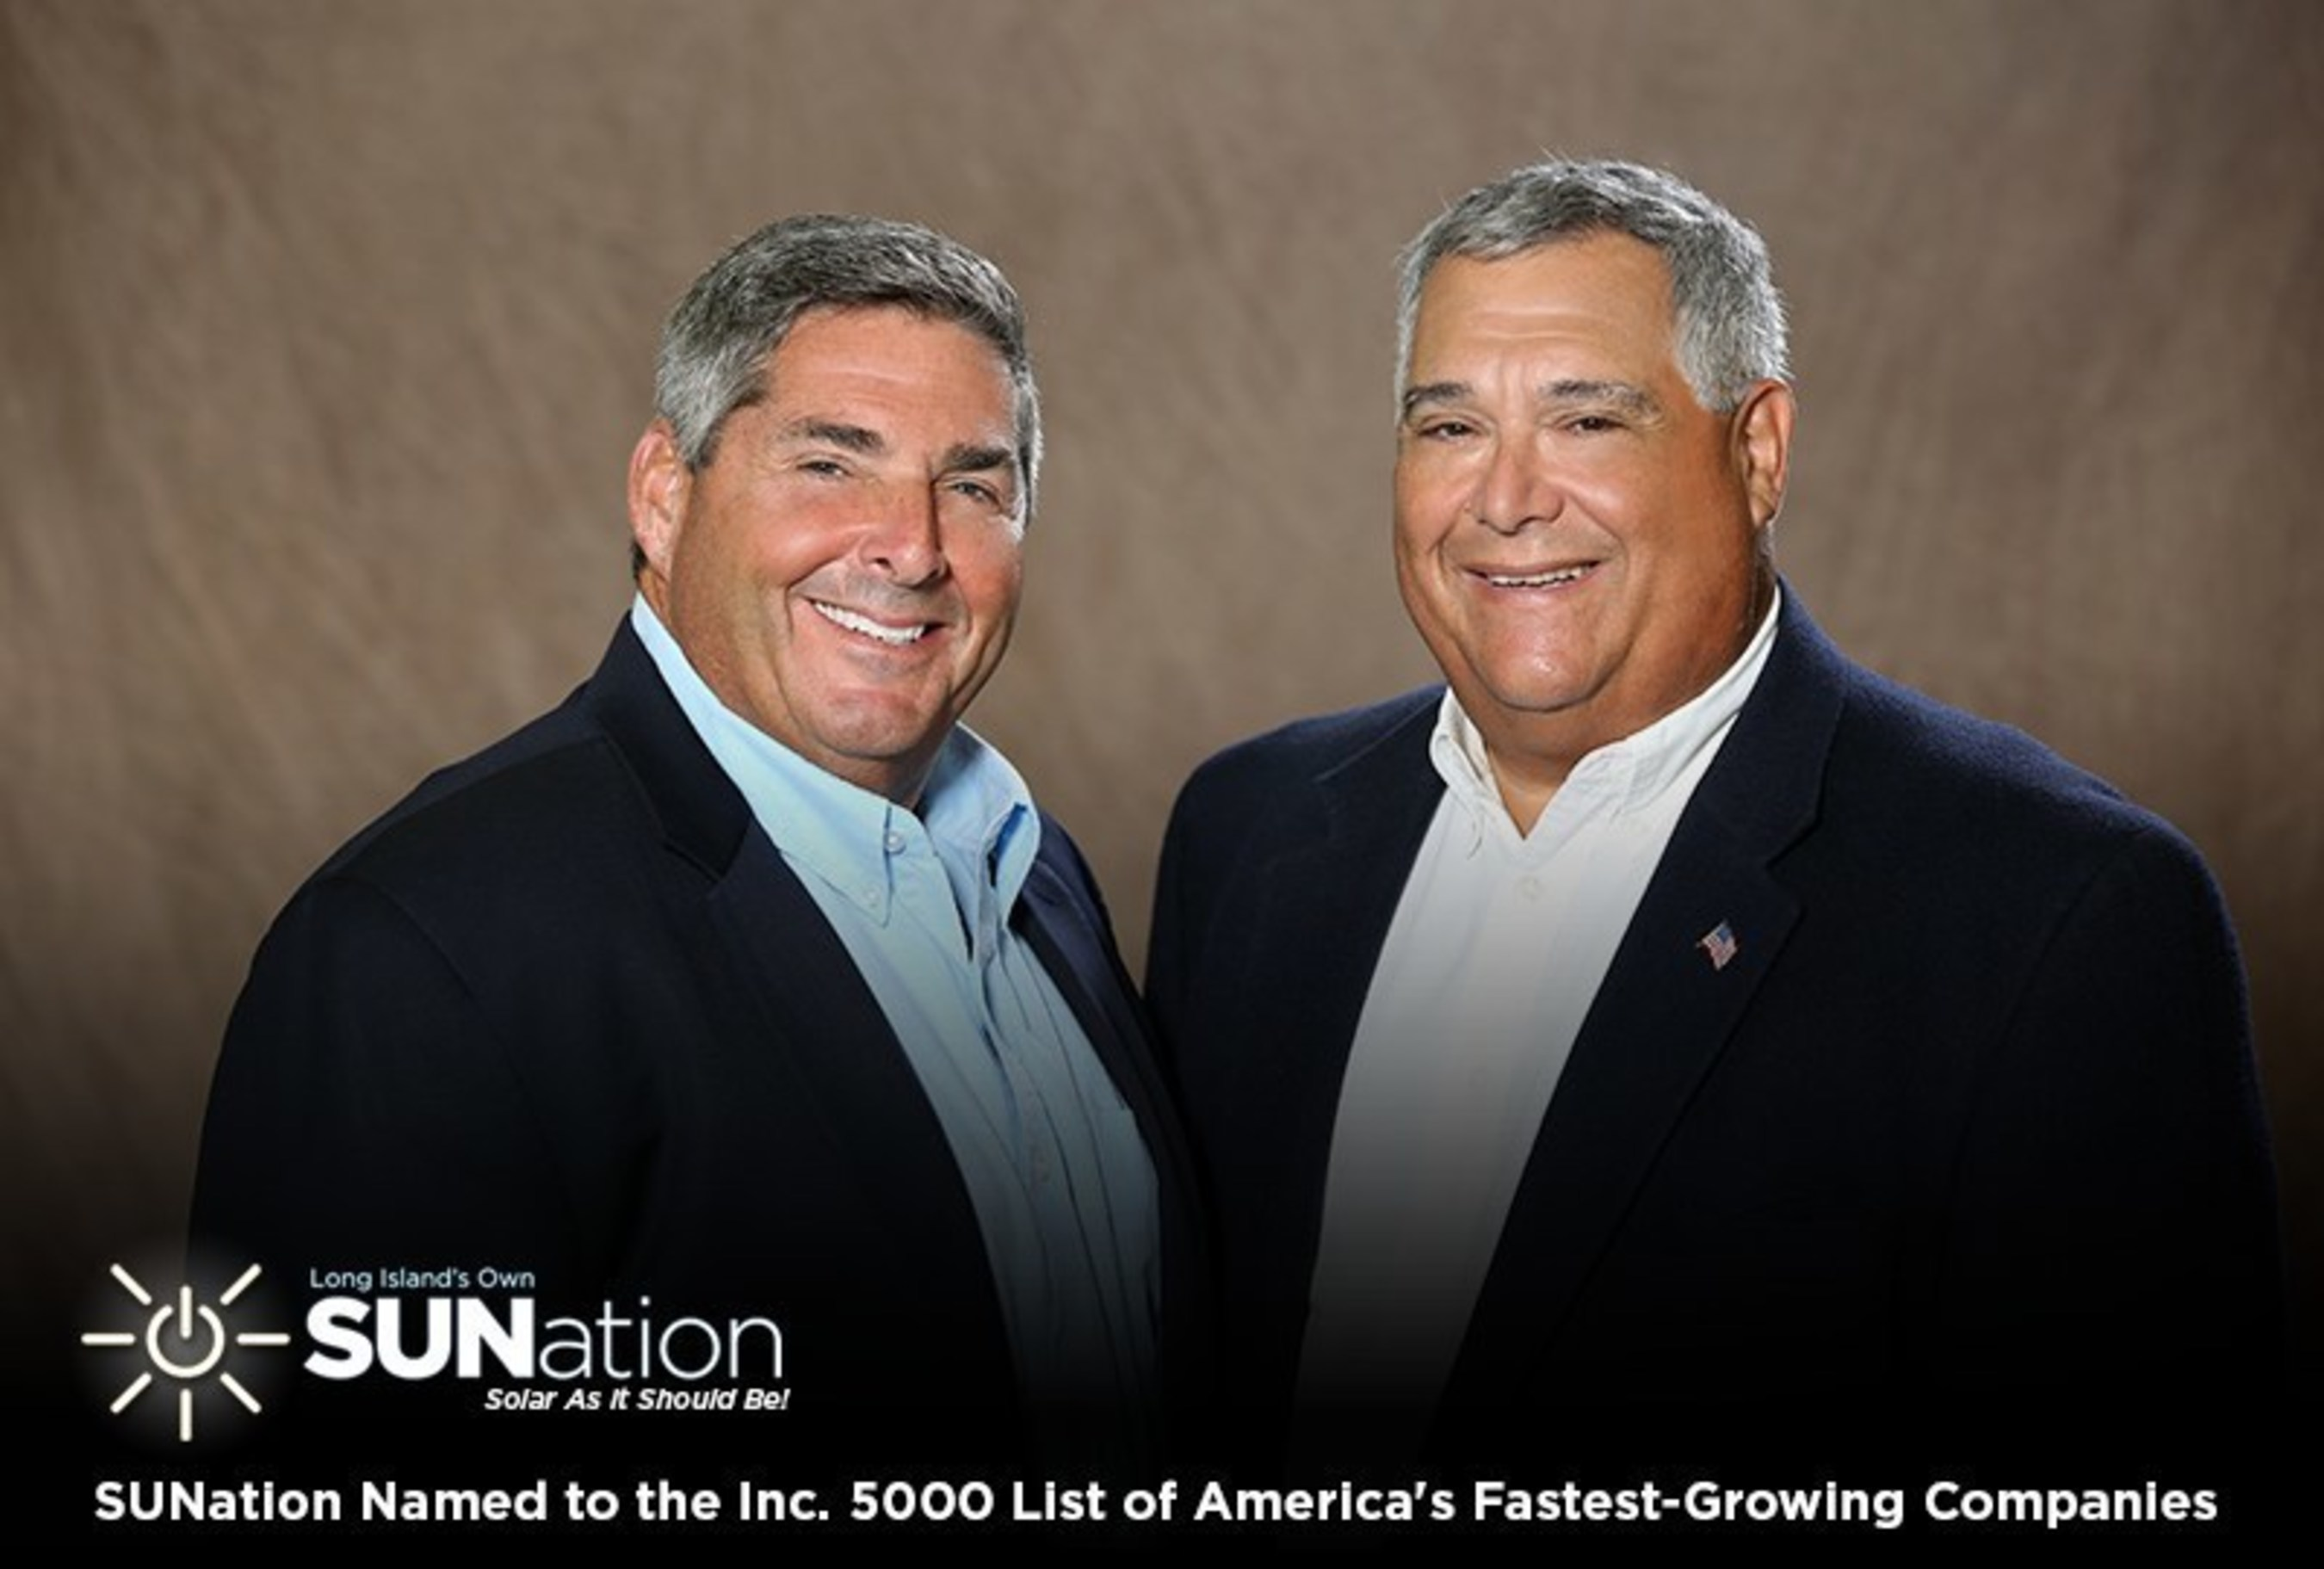 Inc. magazine has named SUNation Solar Systems (www.SUNationLI.com) to its 35th annual Inc. 5000, an exclusive ranking of the nation's fastest-growing private companies. Pictured are co-founder and CEO Scott Maskin (left) and co-founder and chief of sales Mike Bailis (right)